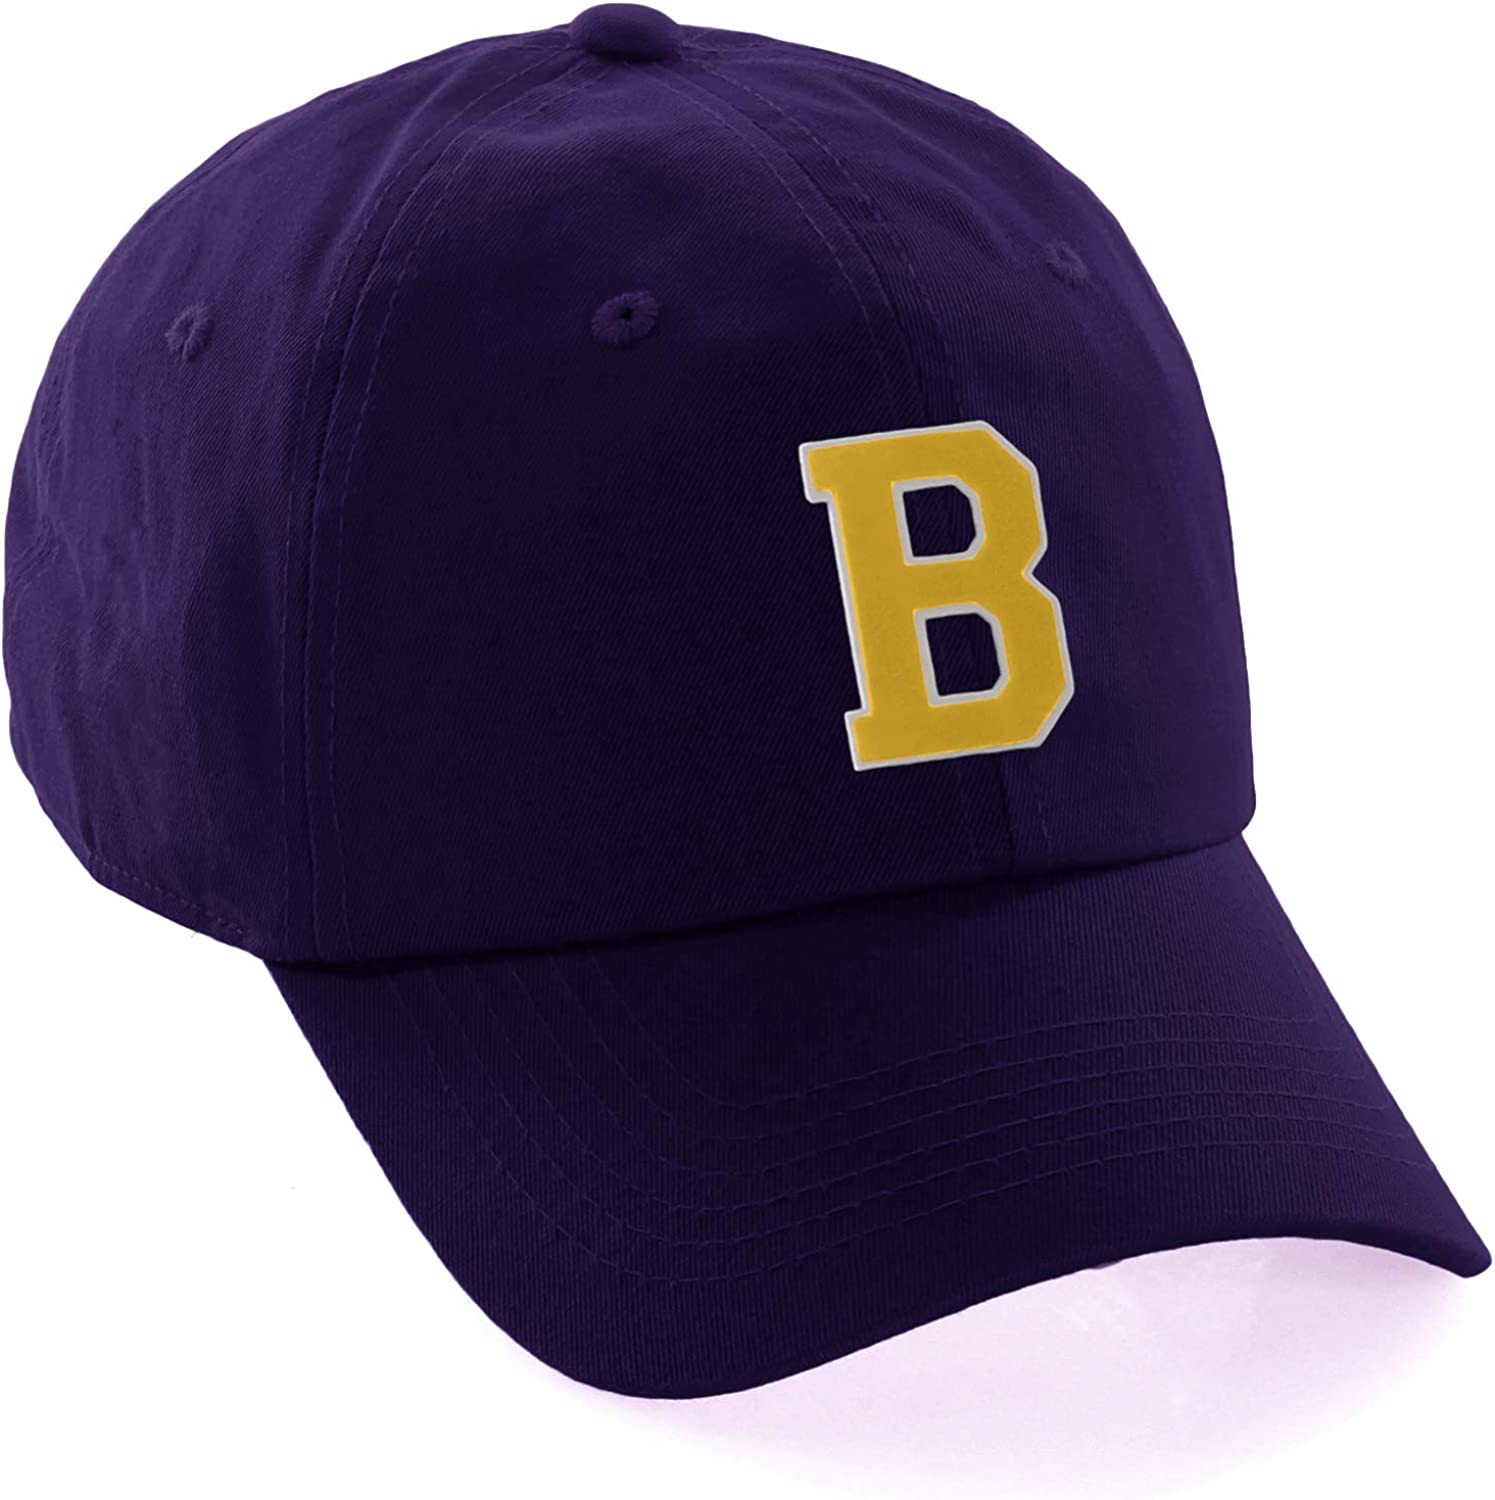 Customized Letter Intial Baseball Hat A to Z Team Colors, Purple Cap White Gold